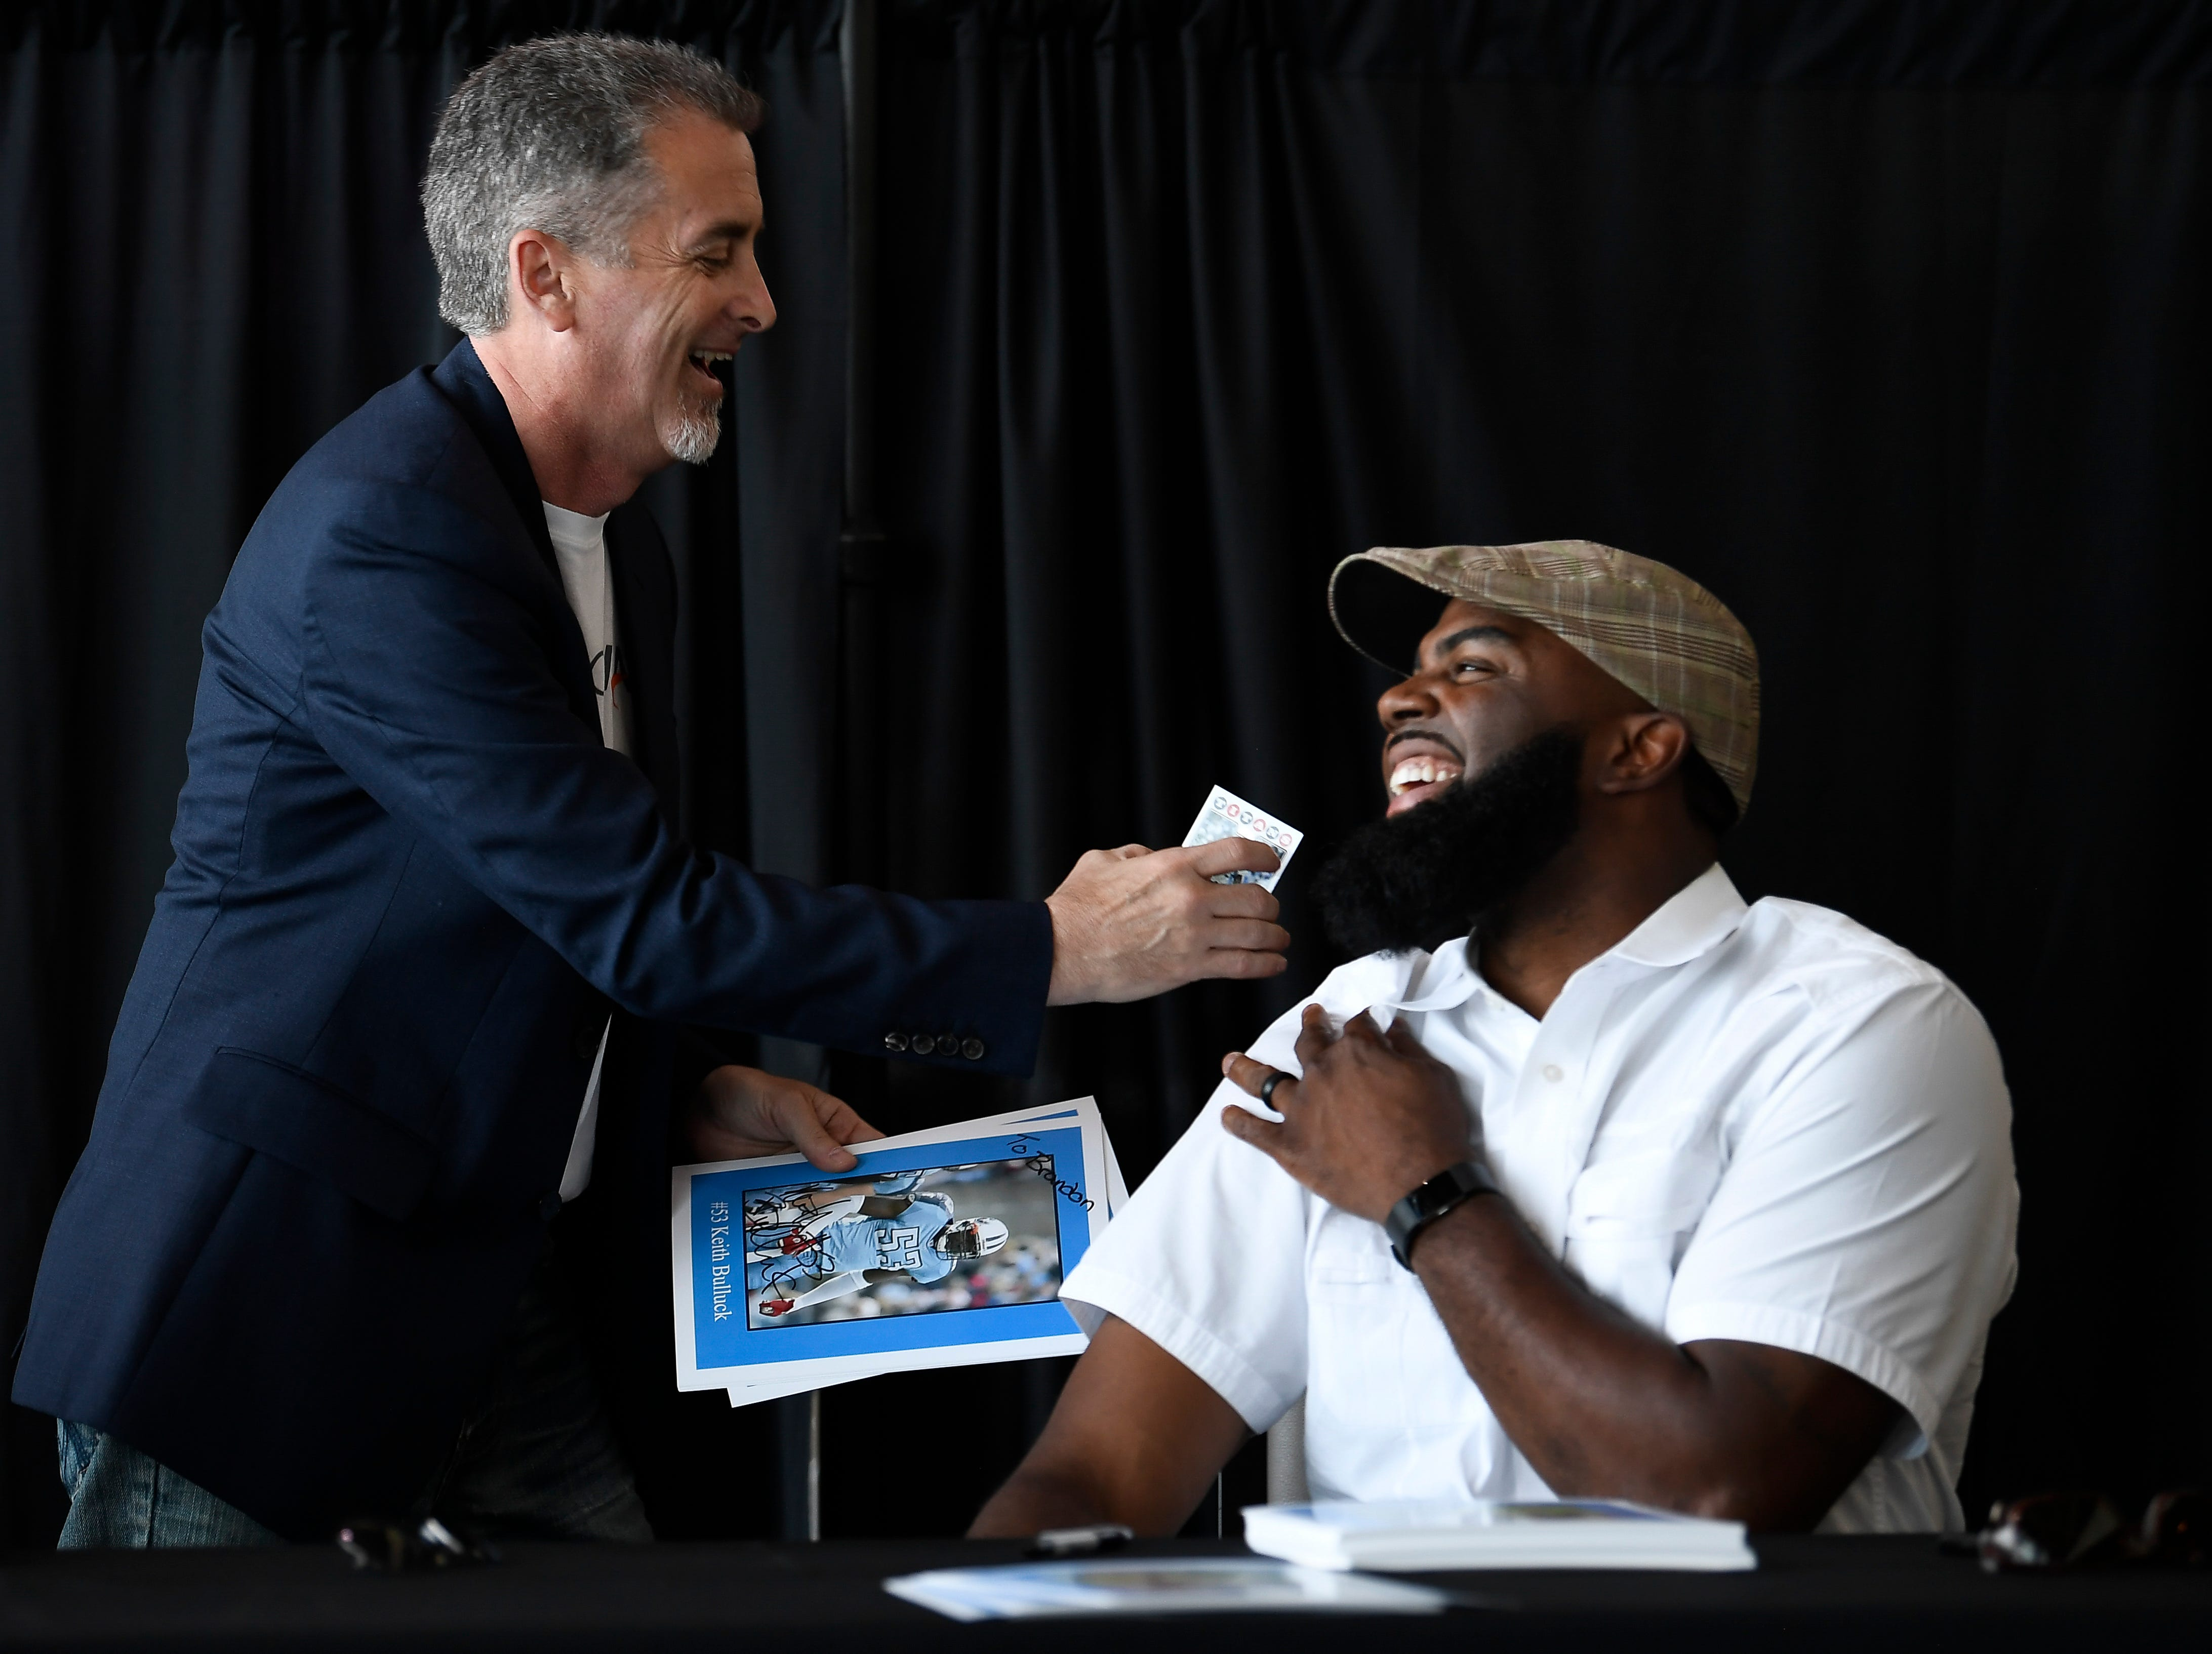 Former Titans wide receiver Kevin Dyson, right, shares a laugh with Rick Solovy of Chicago during a corporate event at Nissan Stadium Thursday, July 12, 2018, in Nashville, Tenn. Dyson recently earned his doctorate from Trevecca Nazarene University.